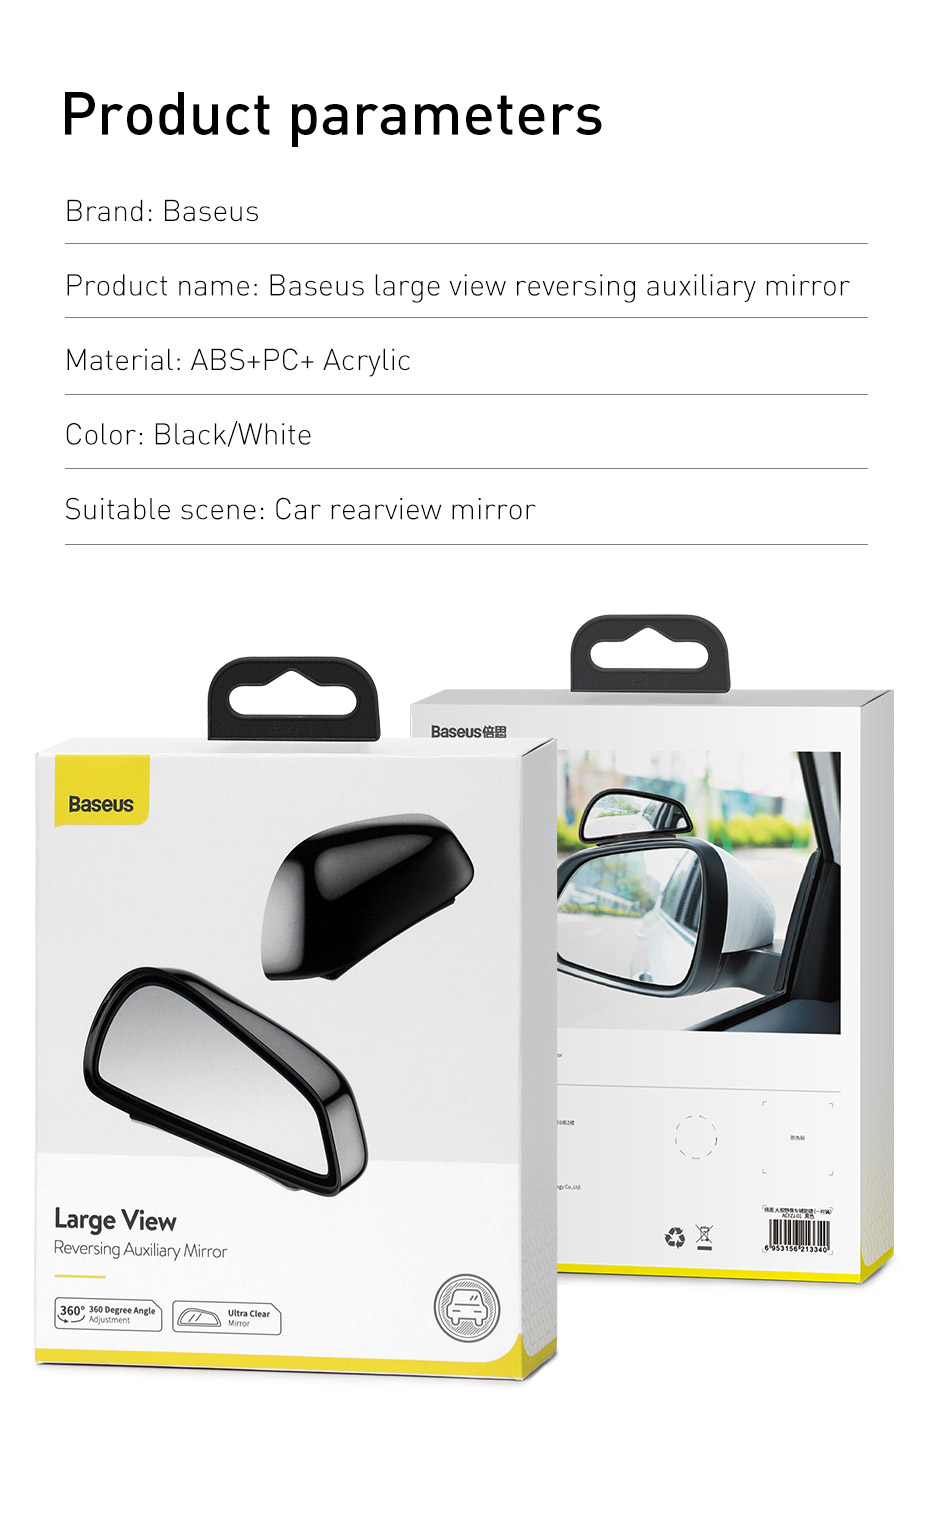 Baseus 1 Pair Car Blind Rearview Auxiliary Mirror High-Definition Large View Wide Angle Rear View Blind Spot Mirror